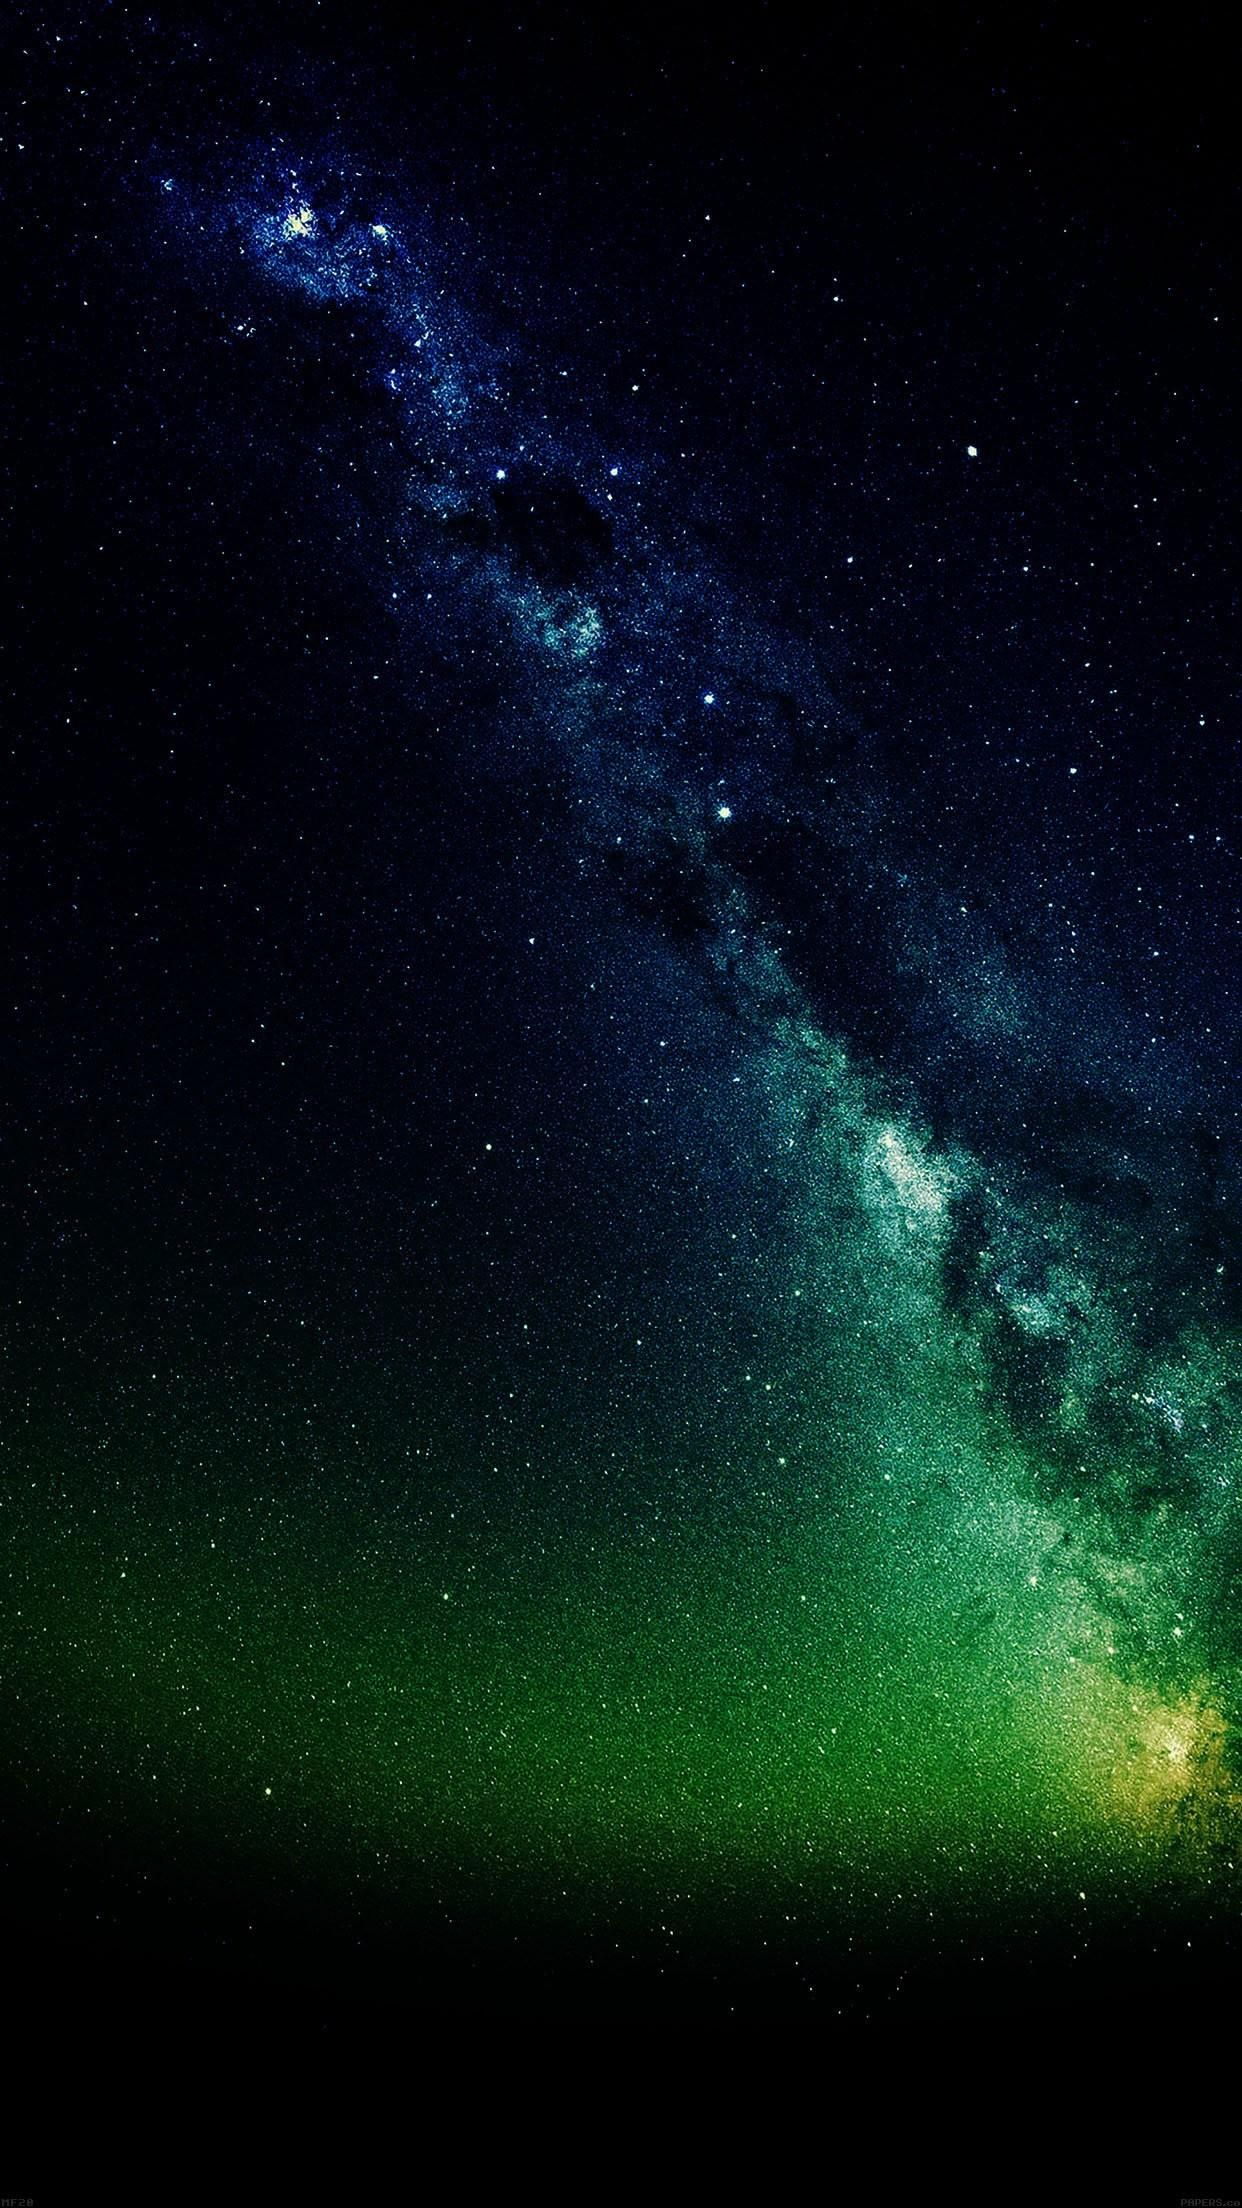 Space Wallpaper 4k 260980 Space Iphone Wallpaper Space Phone Wallpaper Wallpaper Space